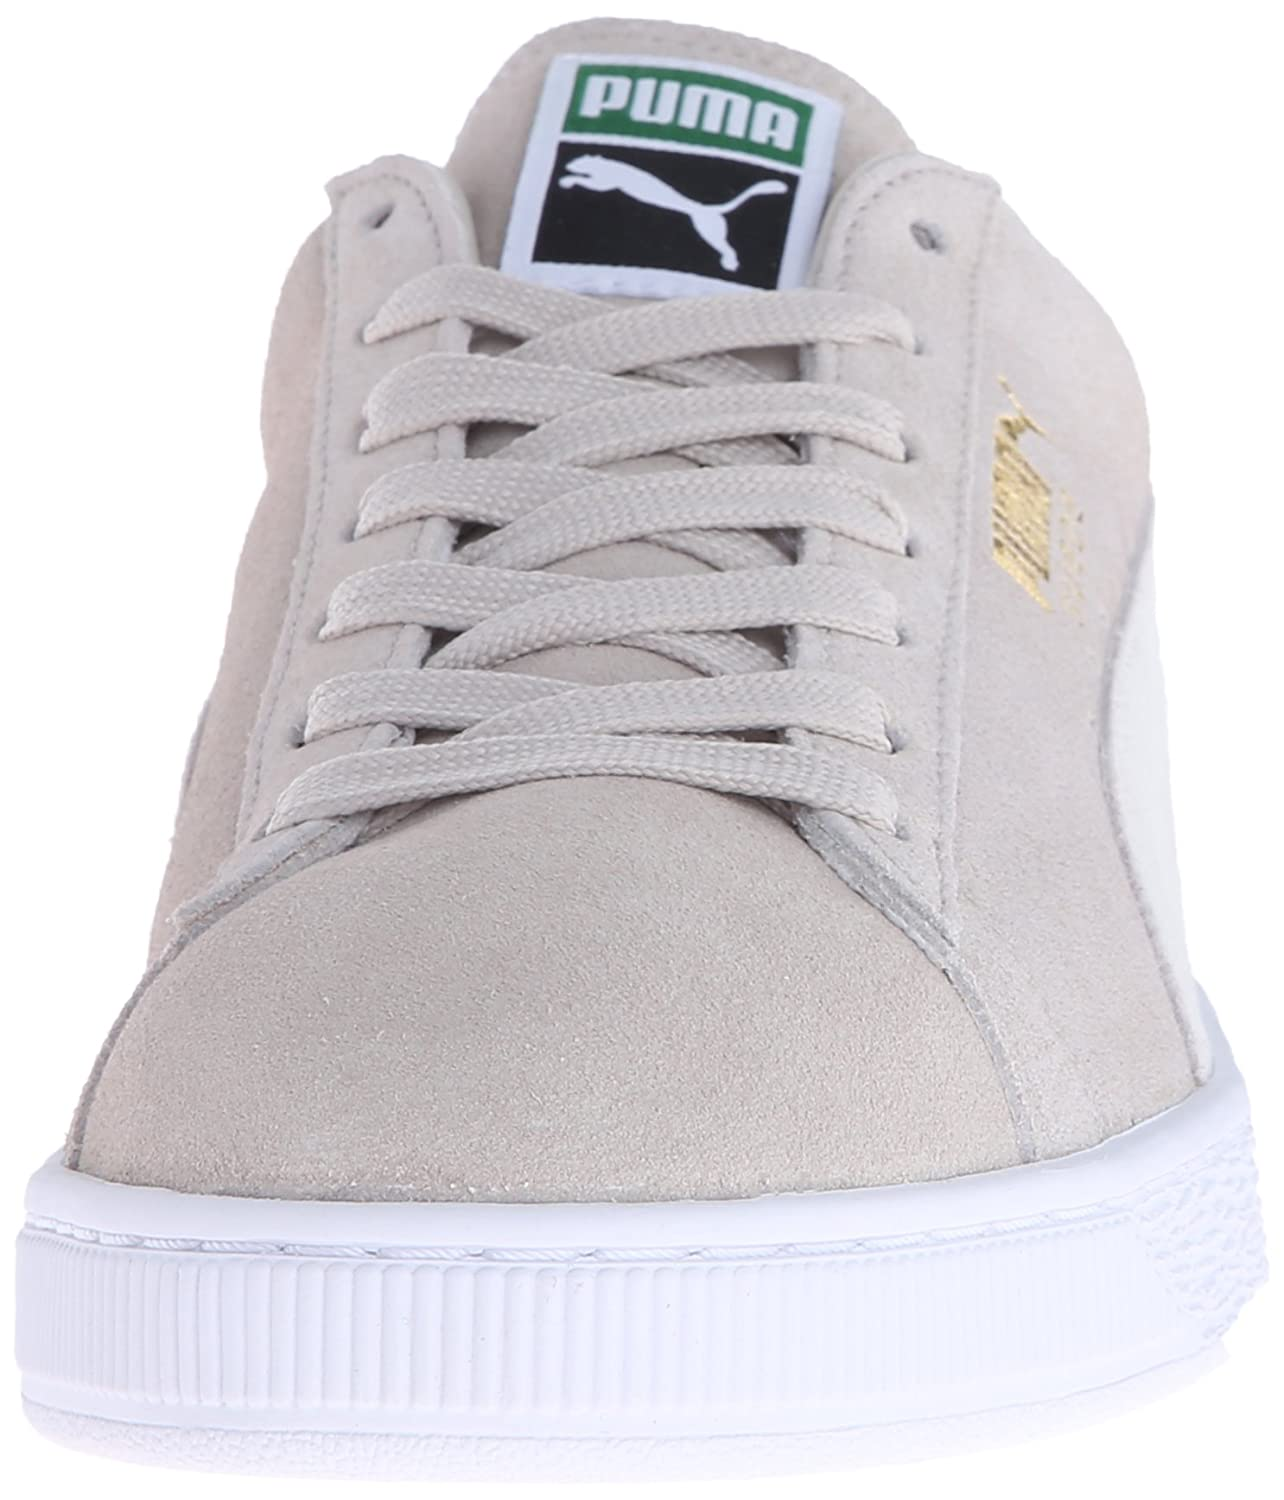 PUMA Adult Suede Classic Shoe B015NUW496 10 M US|Oatmeal/White